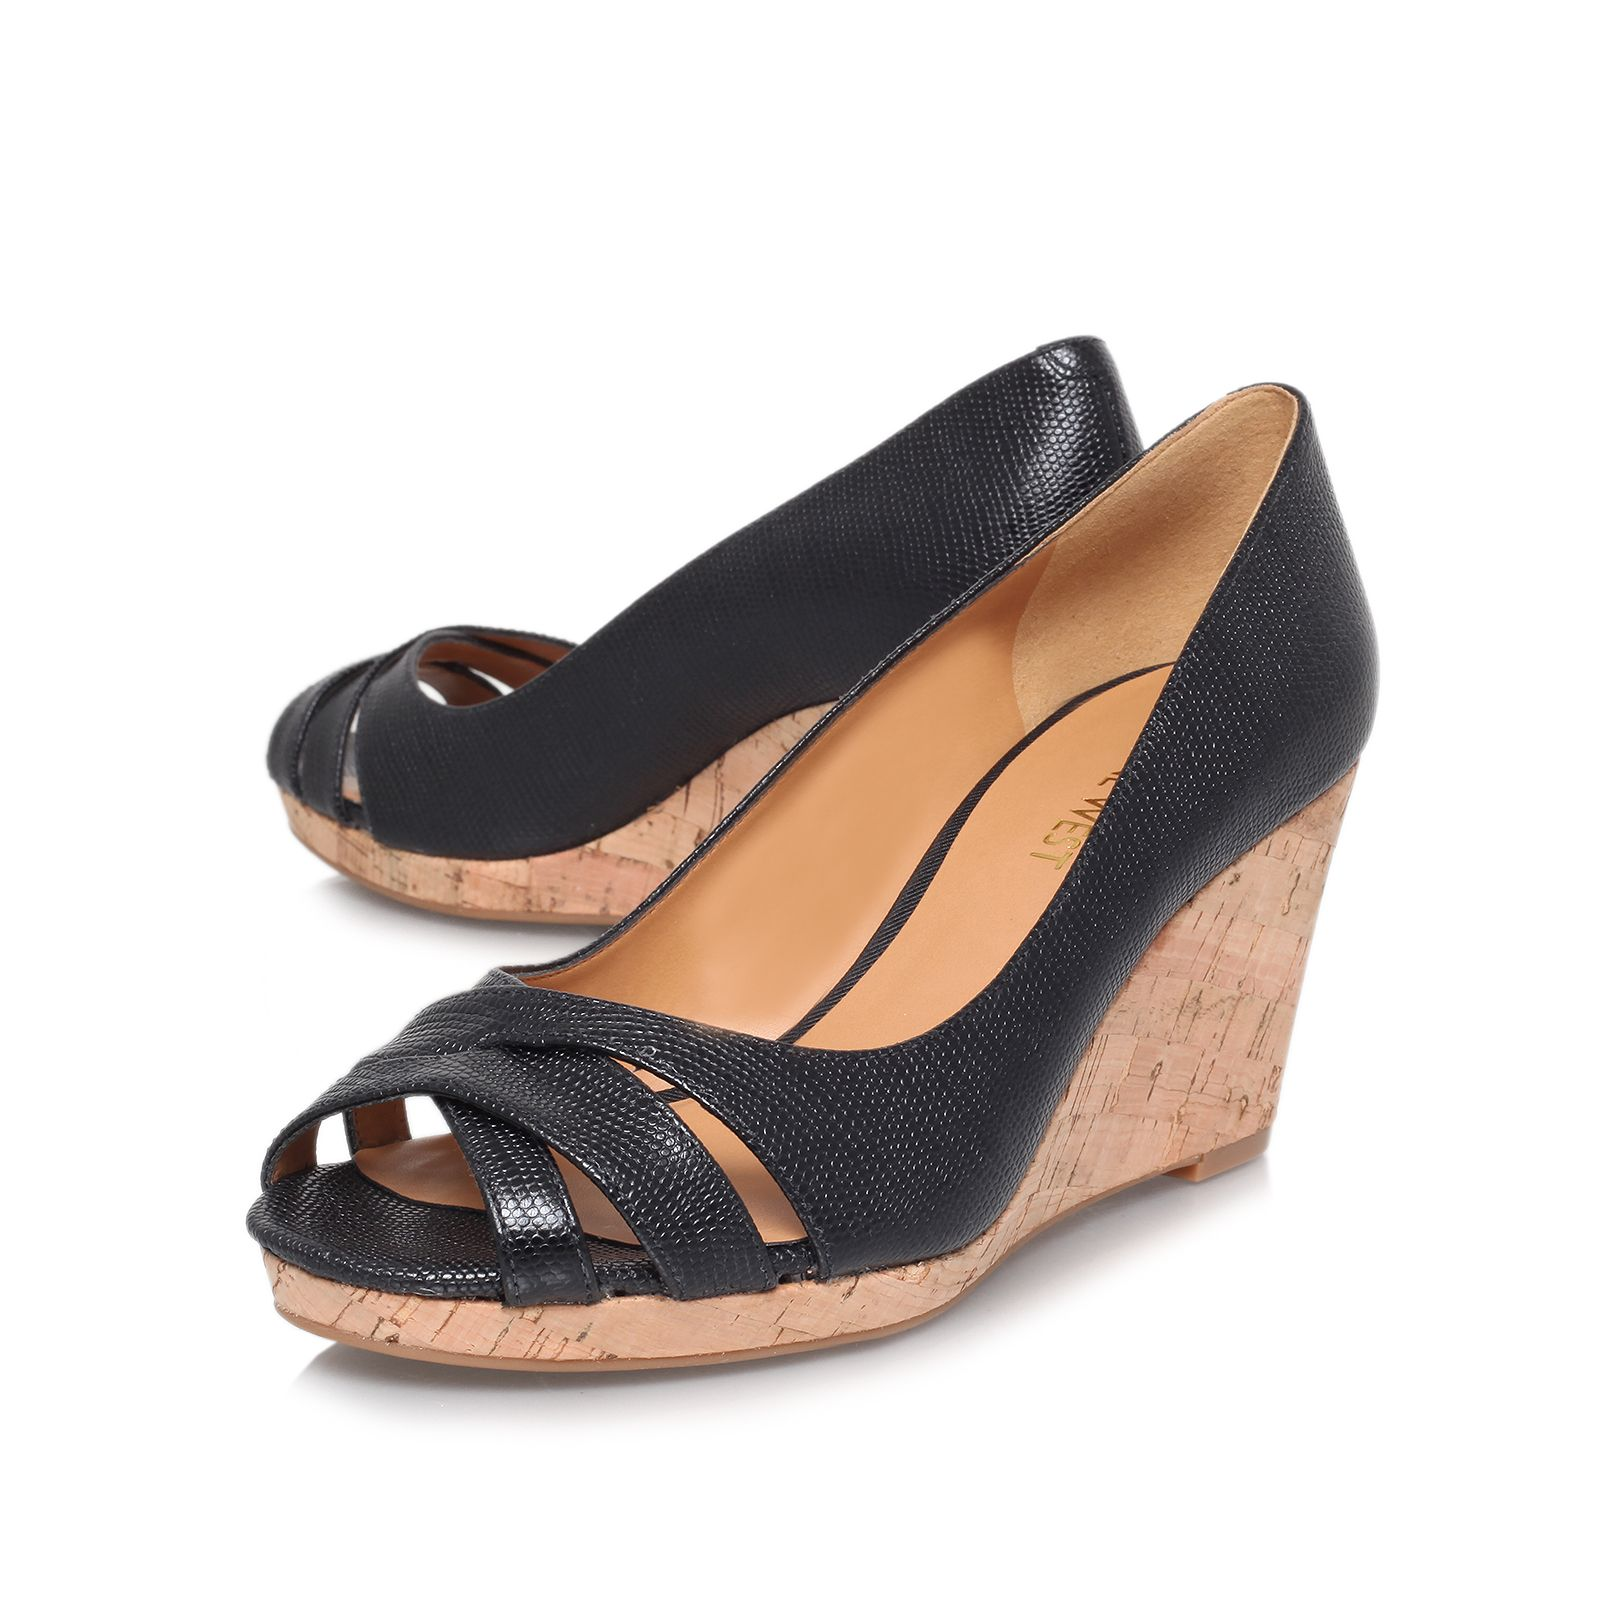 Jelica high wedged sandals